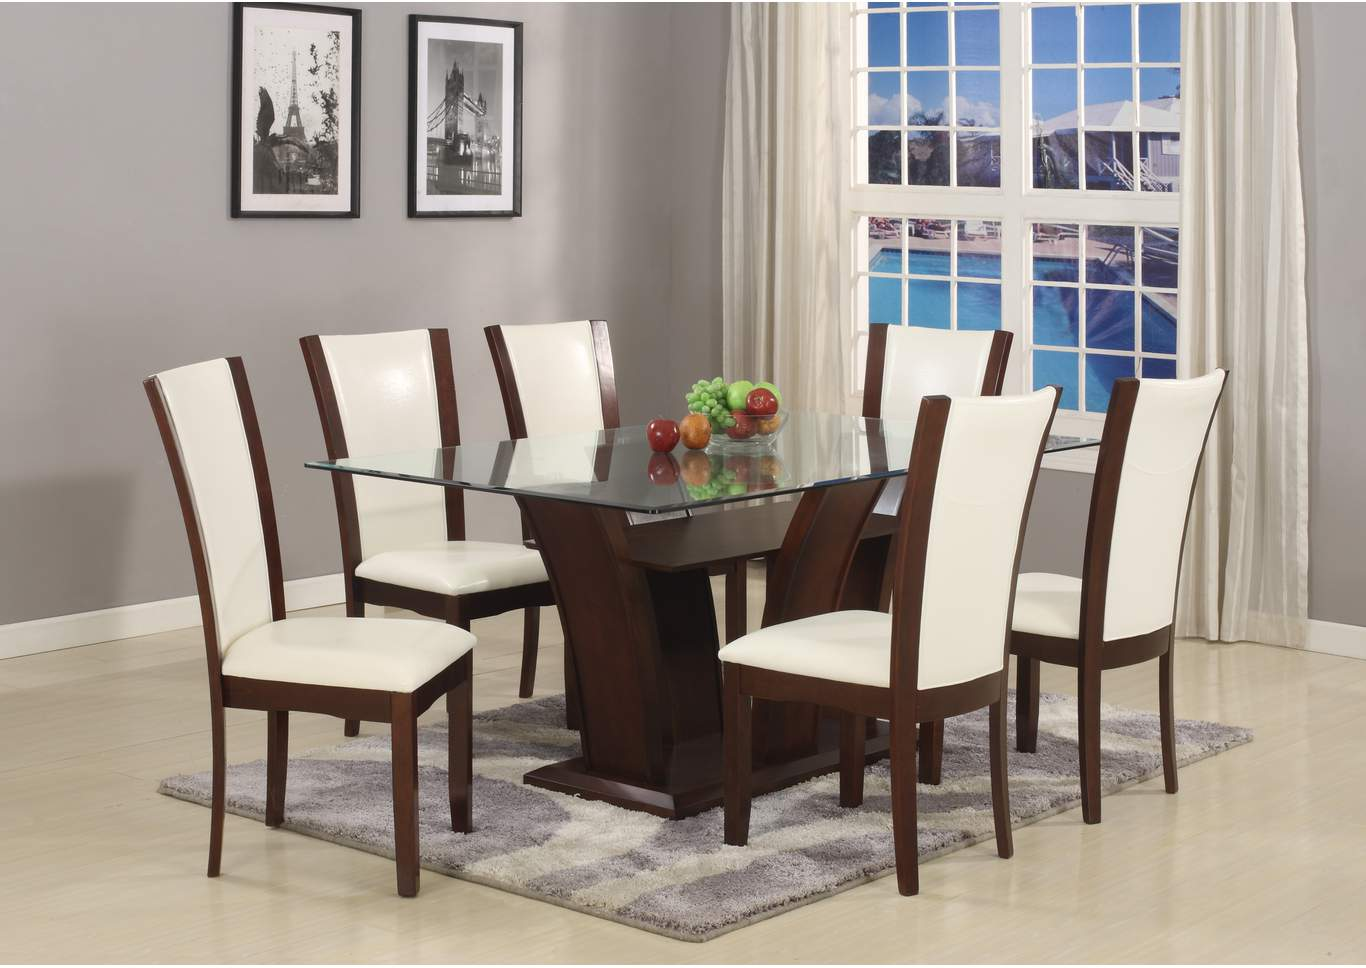 Camelia Rectangular Glass Top Dining Room Table w/4 White Side Chairs,Crown Mark